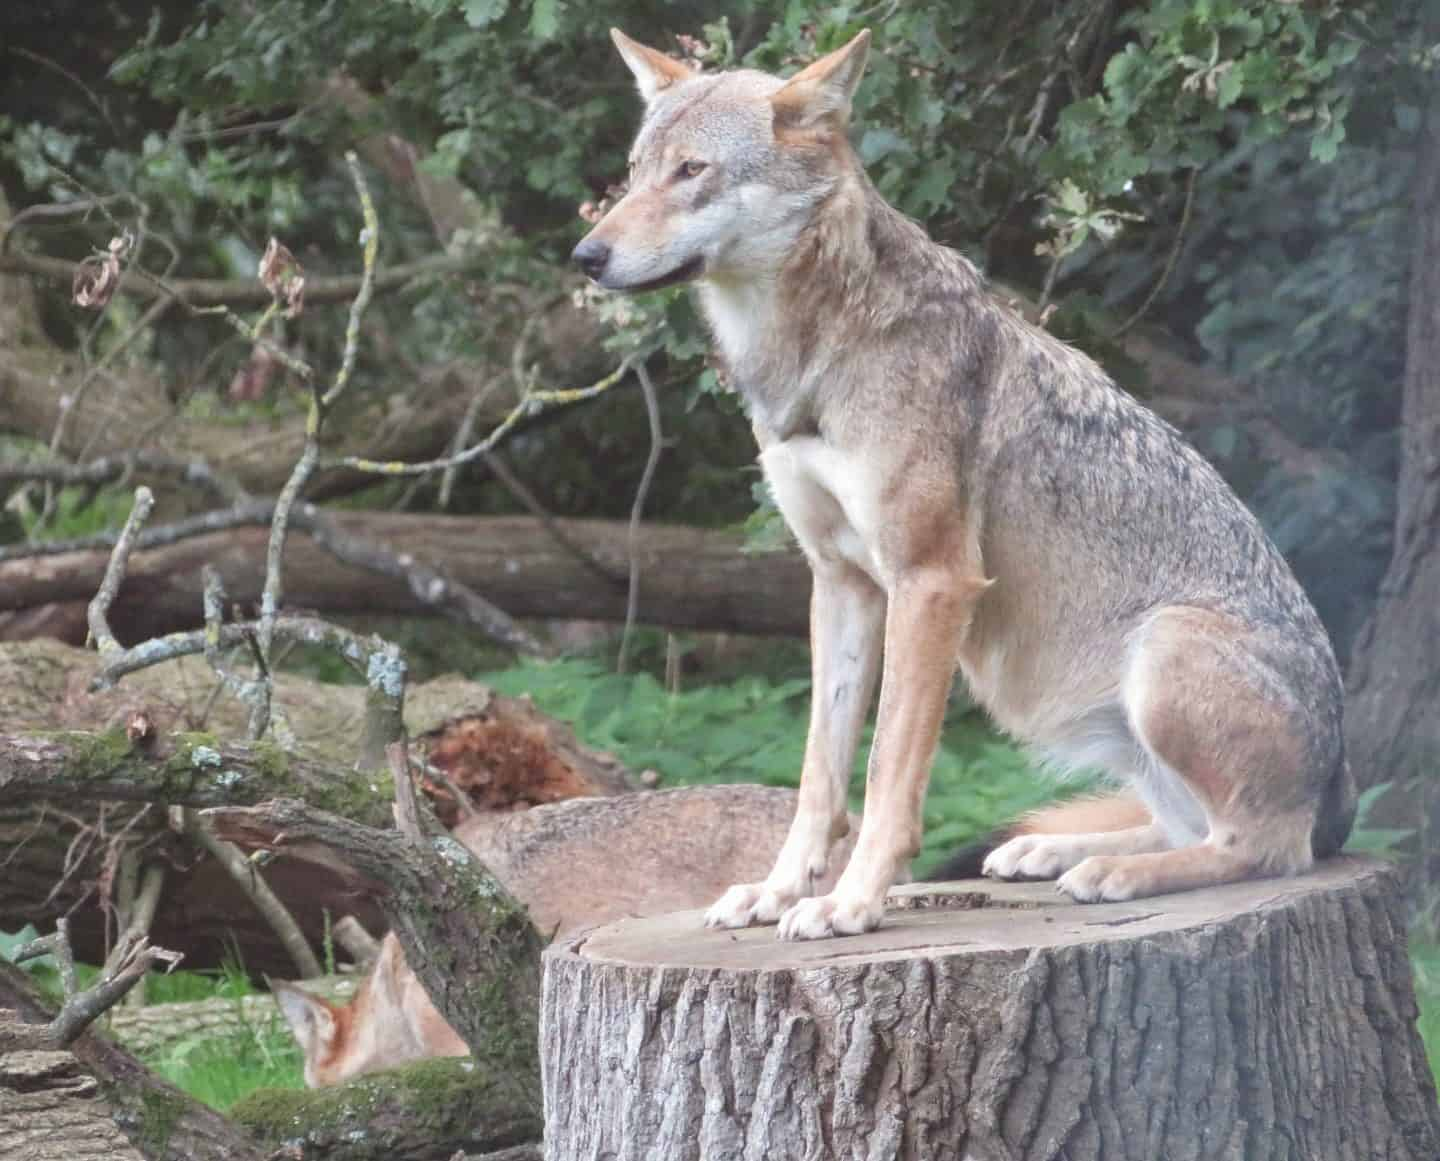 Wolf sitting upright on a log at Longleat Safari Park